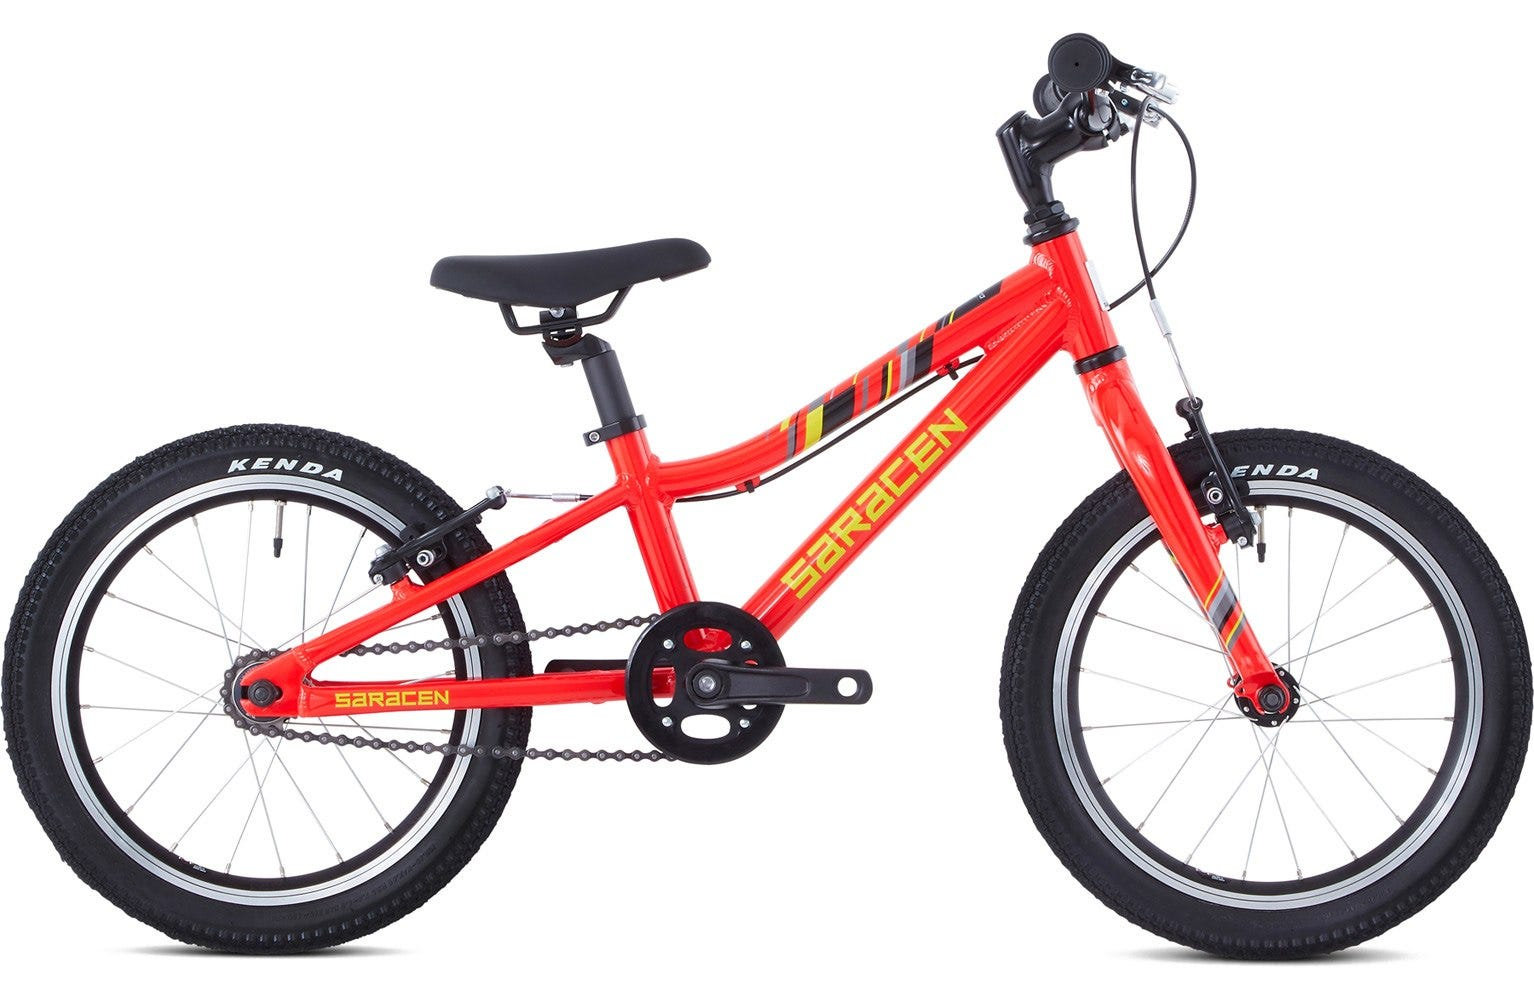 Saracen Mantra 1.6 - 16 inch Boys bike